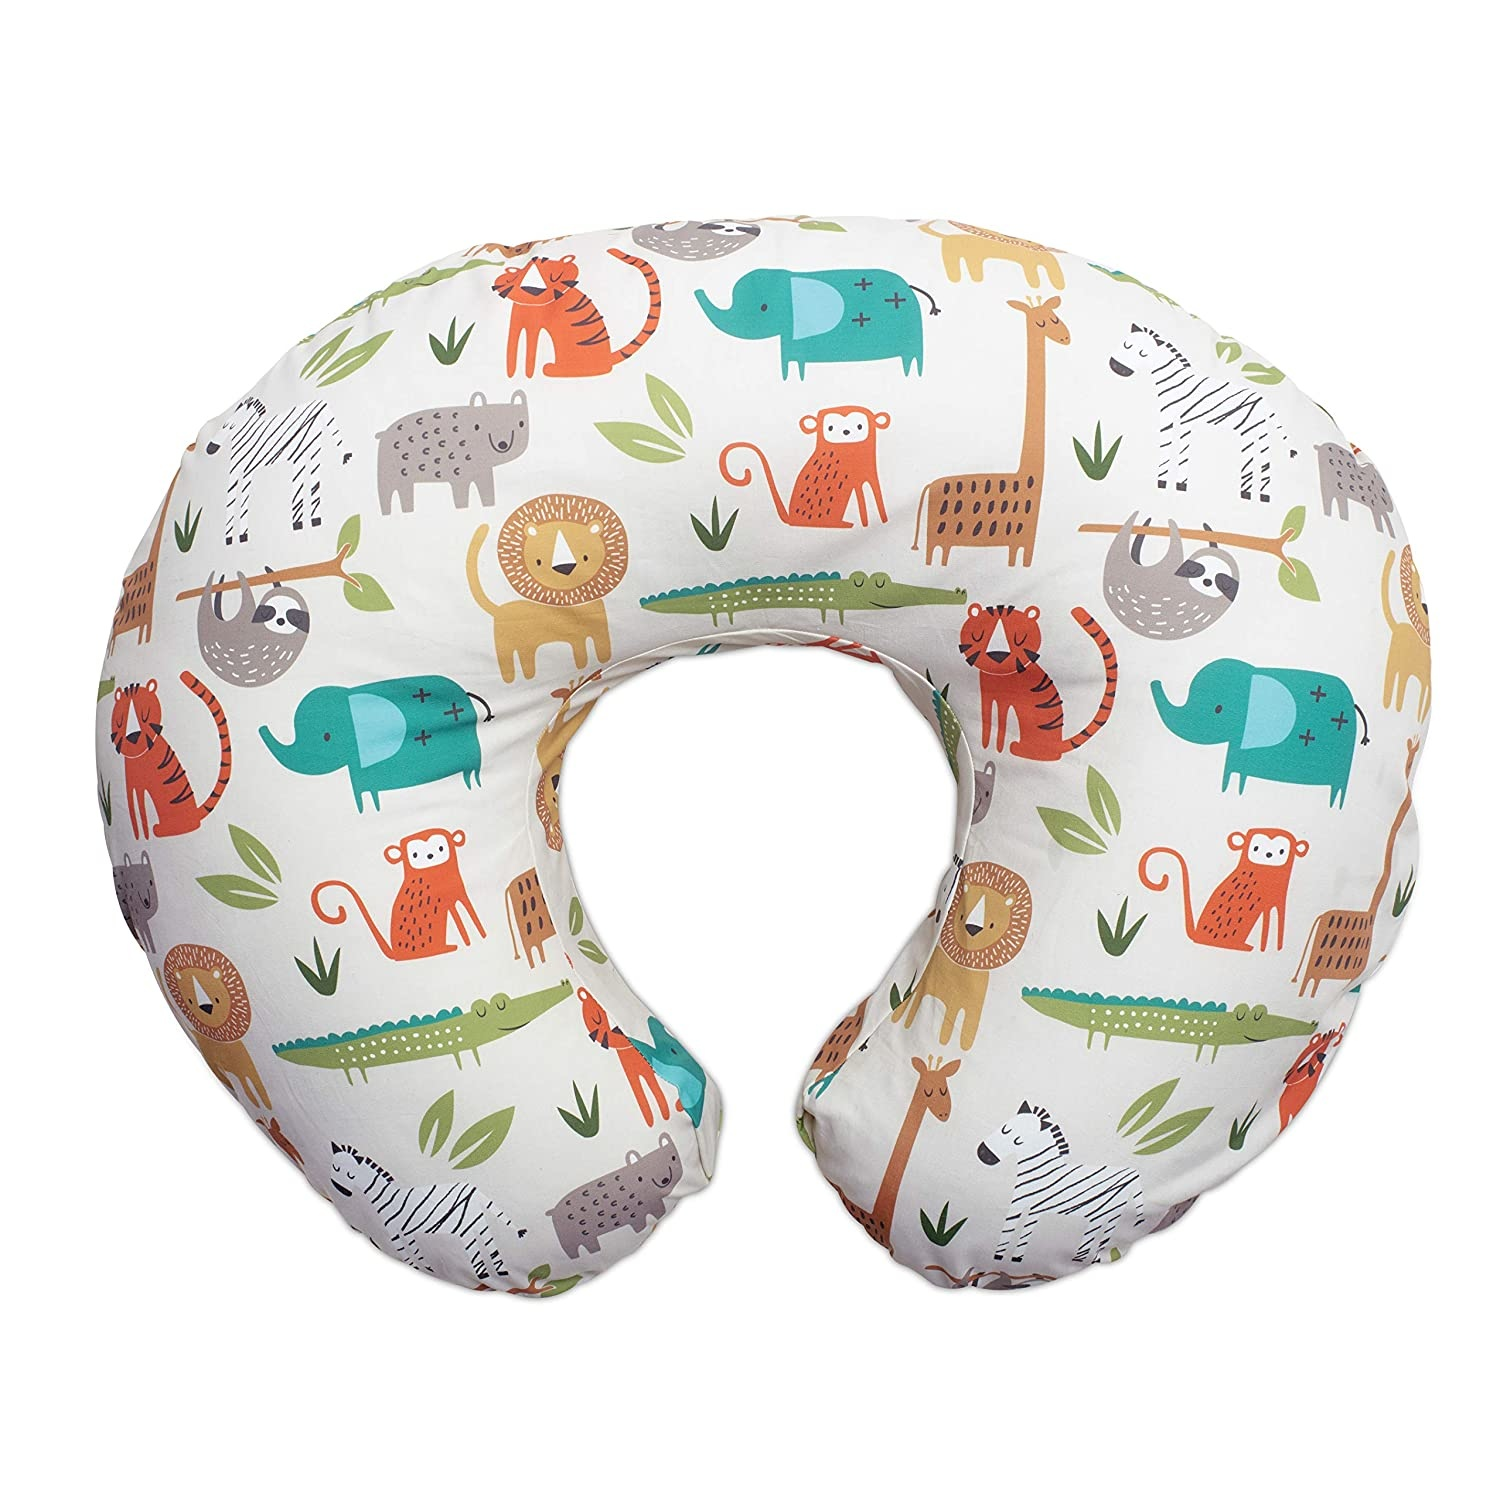 Boppy Boppy Classic Feeding & Infant Support Pillow (curbside/in store exclusive)